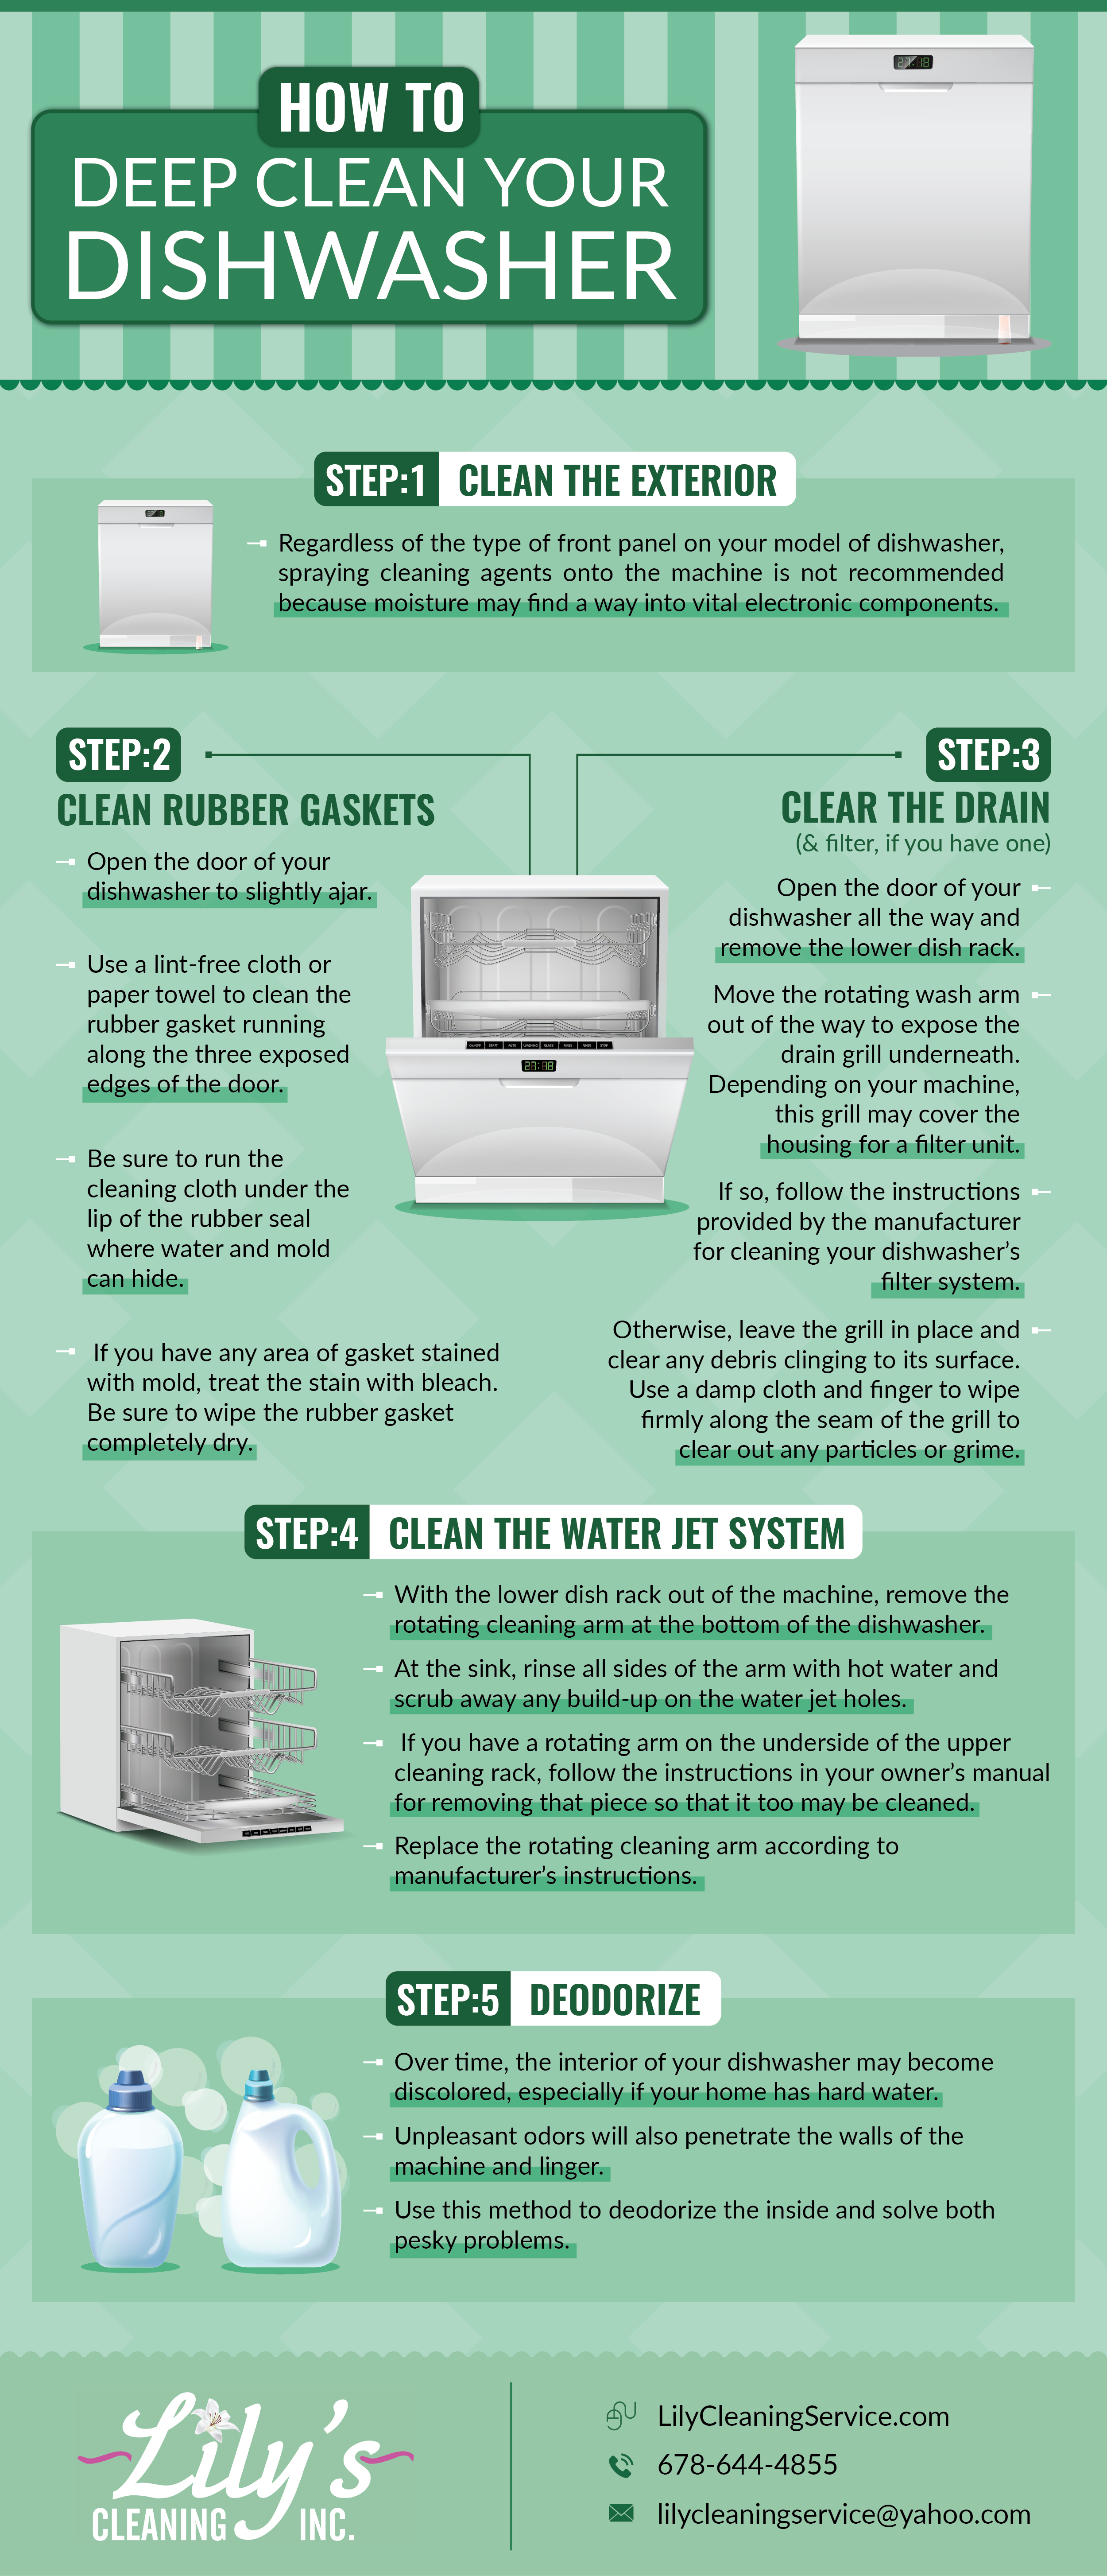 Do You Need to Clean Your Dishwasher? | Lily's Cleaning